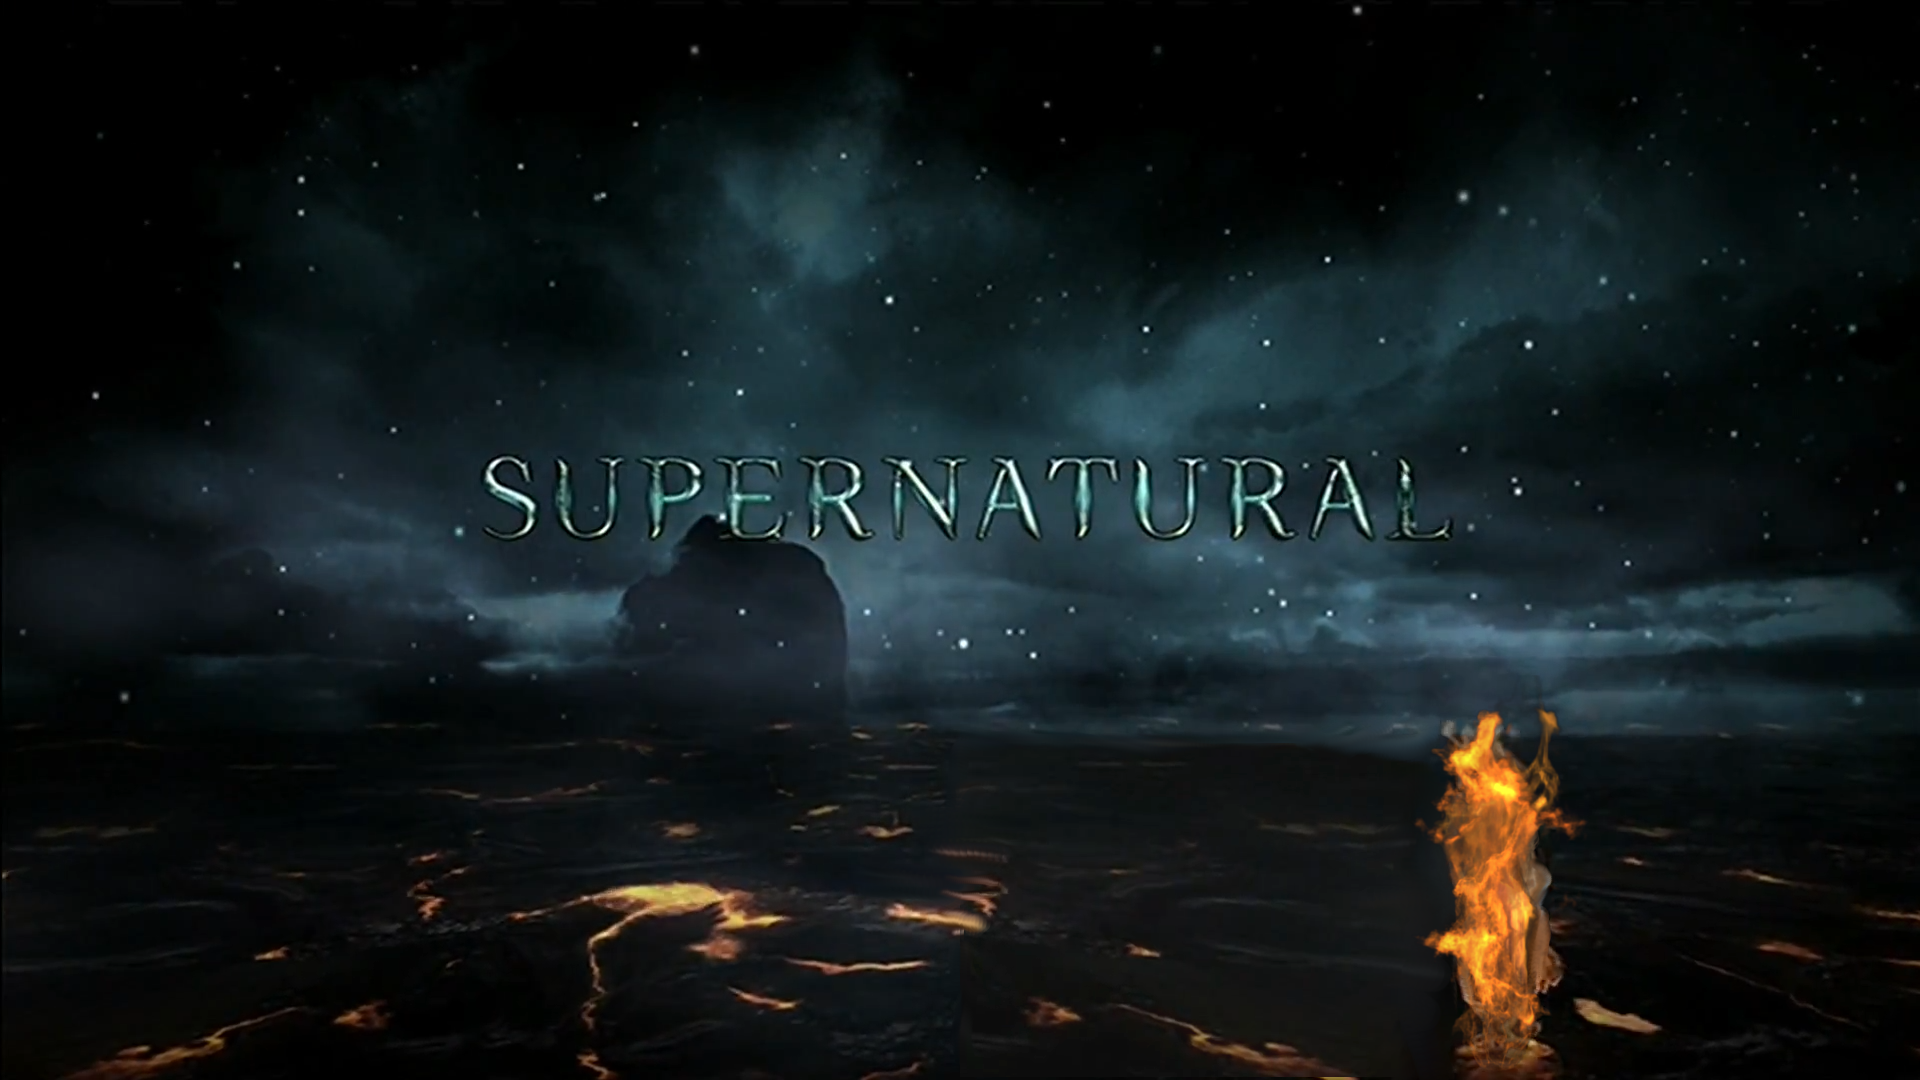 Logo Supernatural Wallpaper Wallpapers Backgrounds Images Art 1920x1080